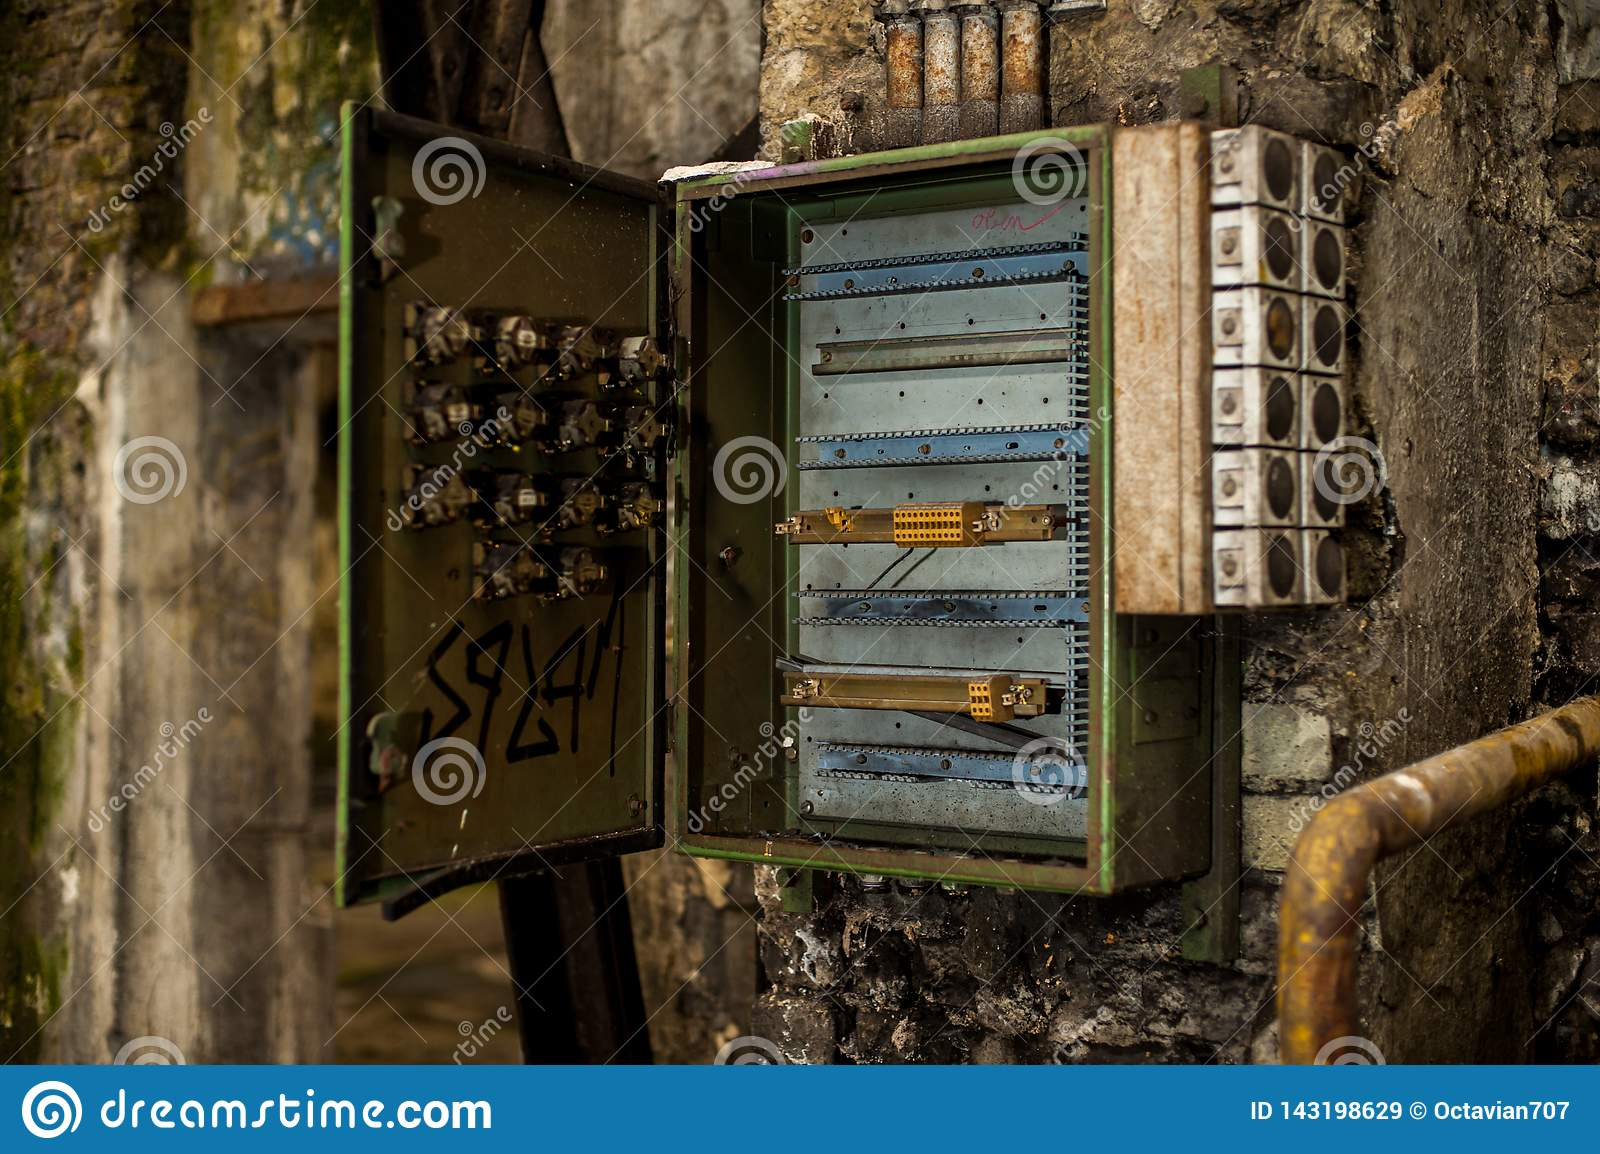 hight resolution of open metal fuse or control electricity box in abandoned industry ruins